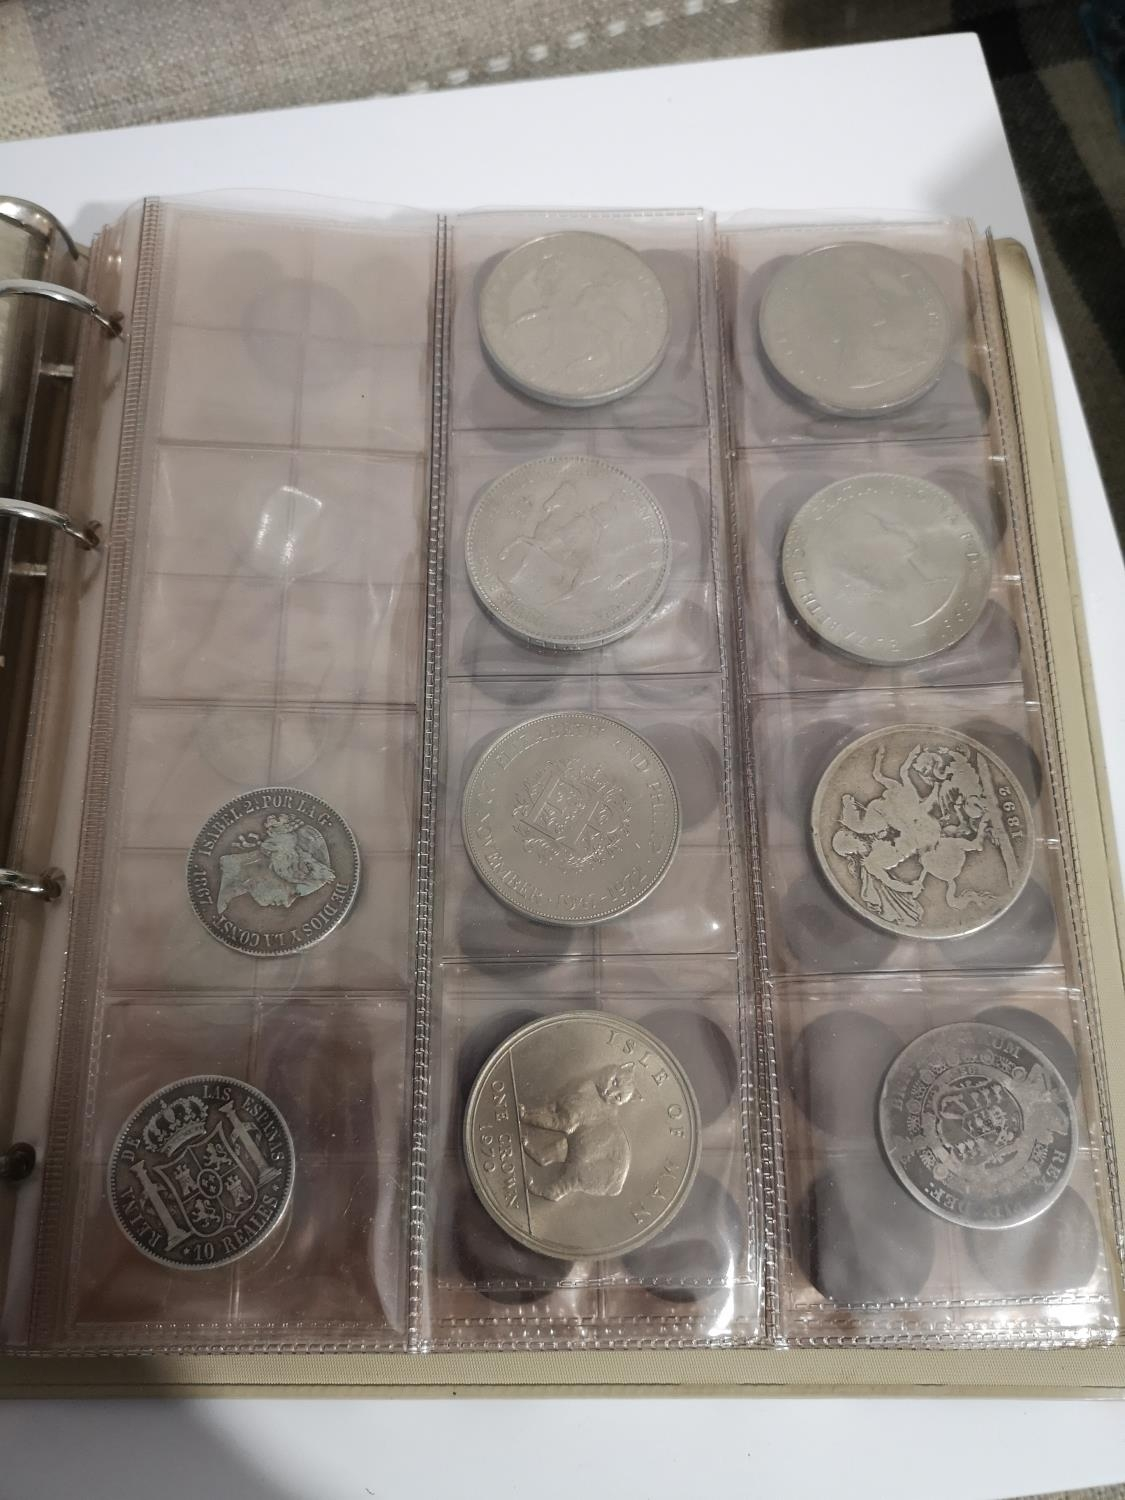 AN ALBUM CONTAINING A QUANTITY 0F 19TH AND 20TH CENTURY COINS TO INCLUDE TWO SPANISH ISABELL II